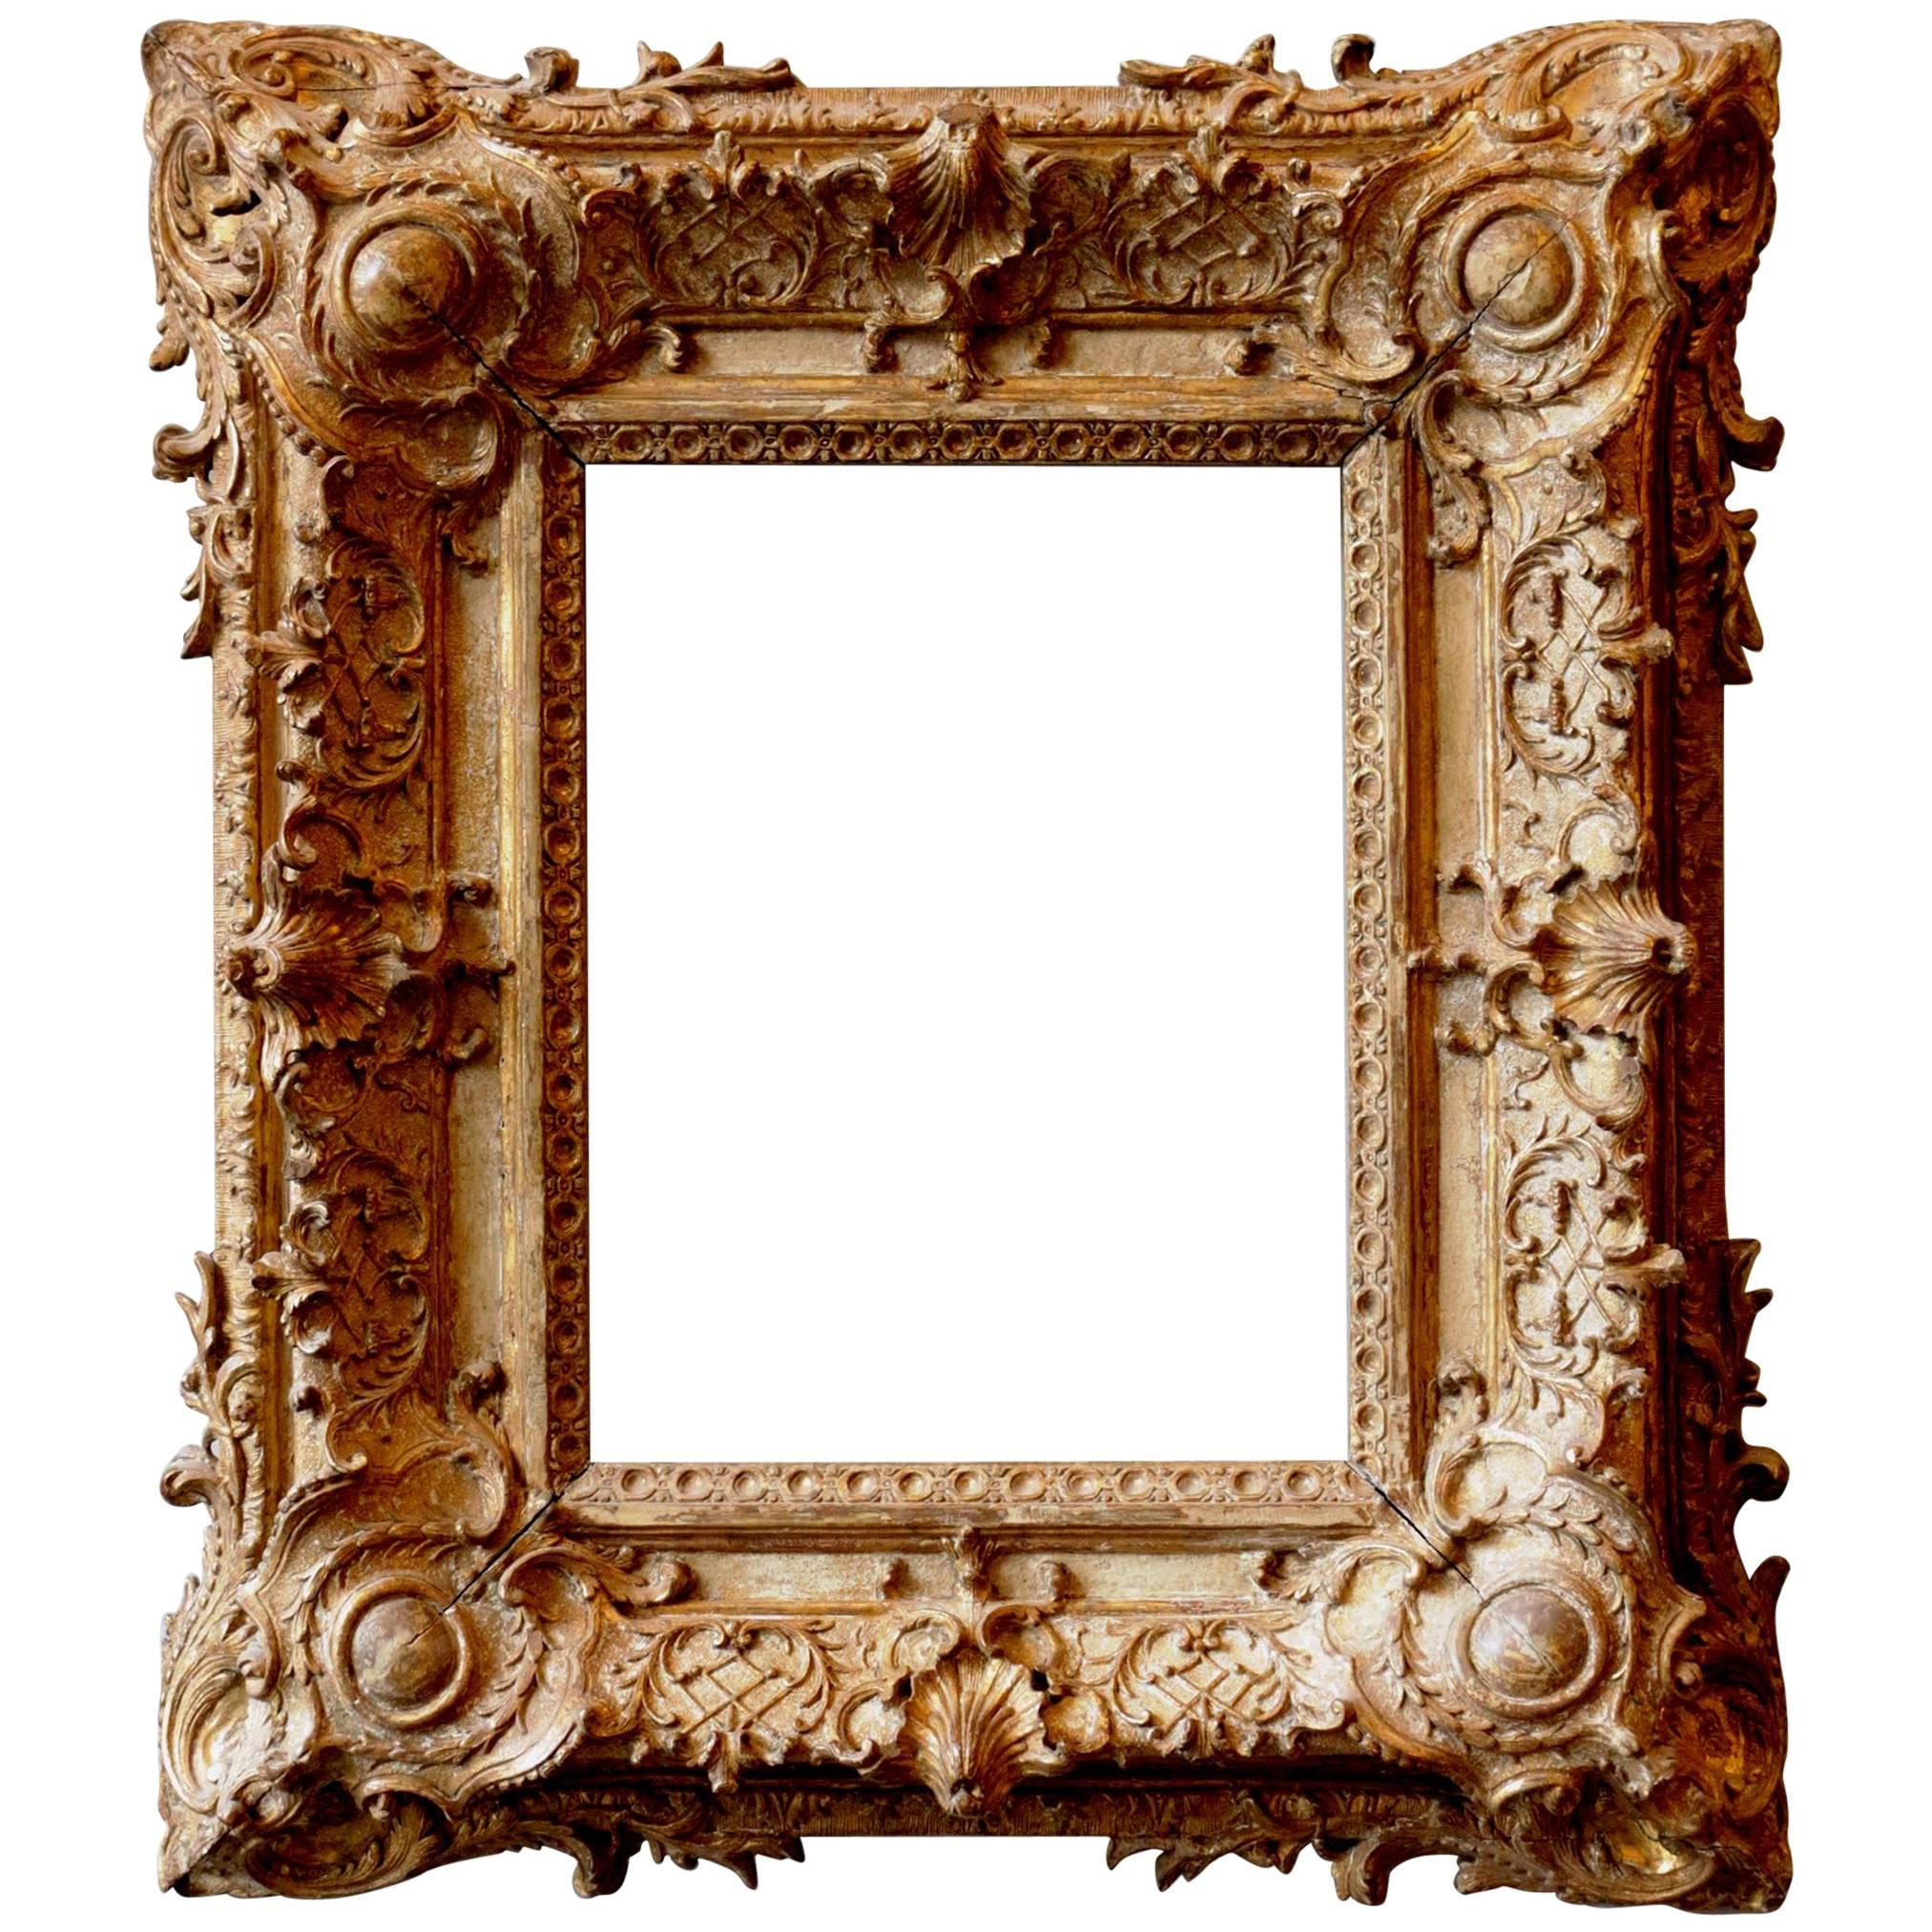 antique mirror frame silver antique and vintage mirrors 15609 for sale at 1stdibs